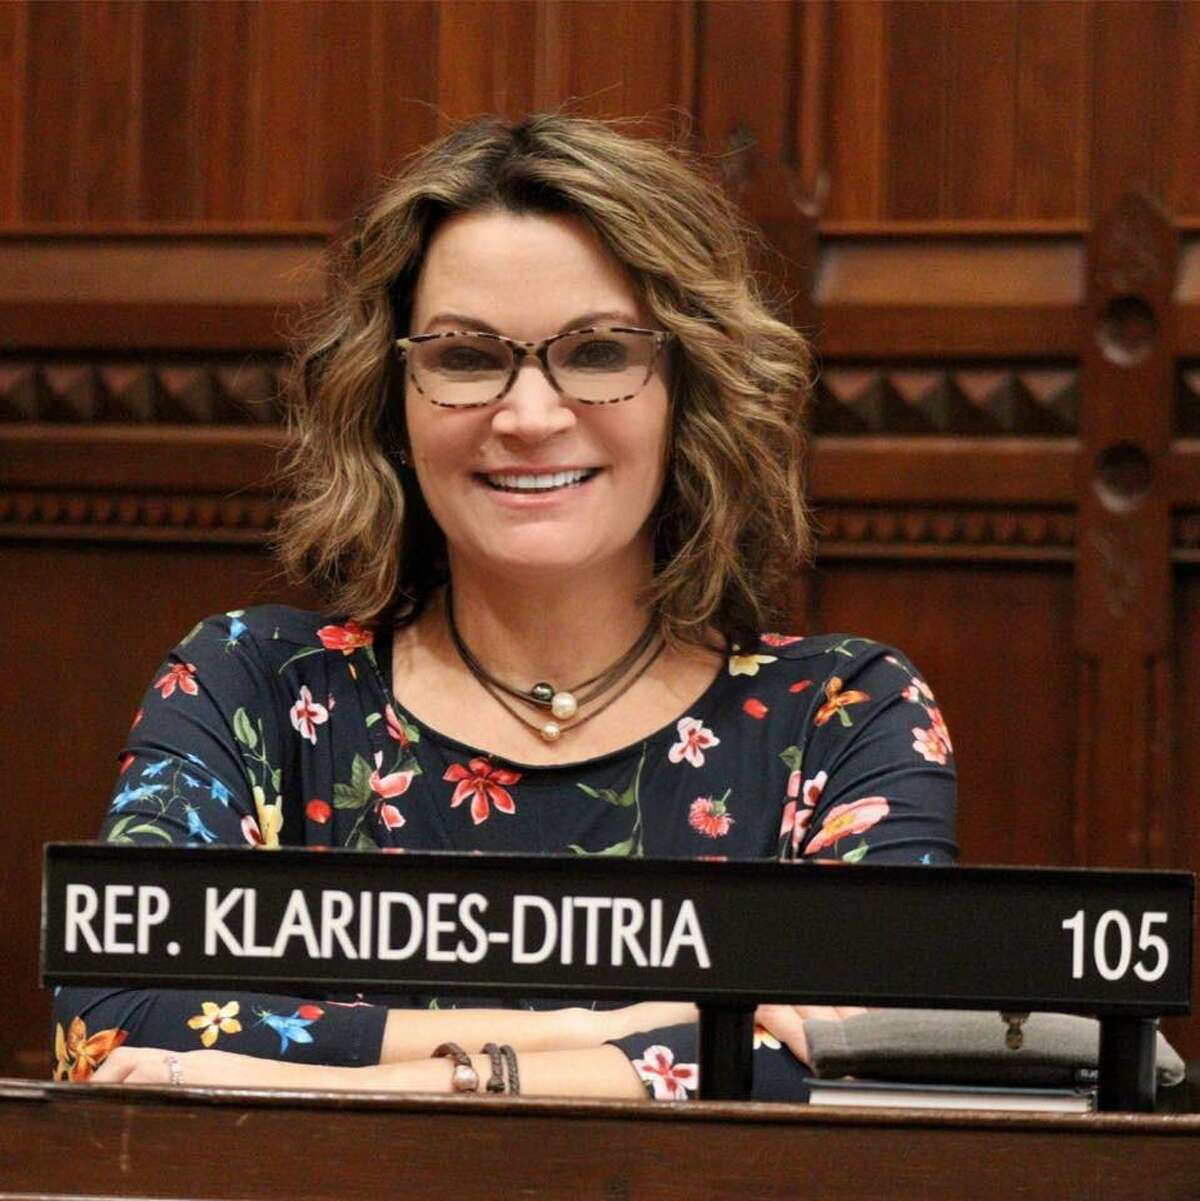 Nicole Klarides-Ditria is seeking a third term as State Representative from the 105th District which includes Beacon Falls, Derby and Seymour